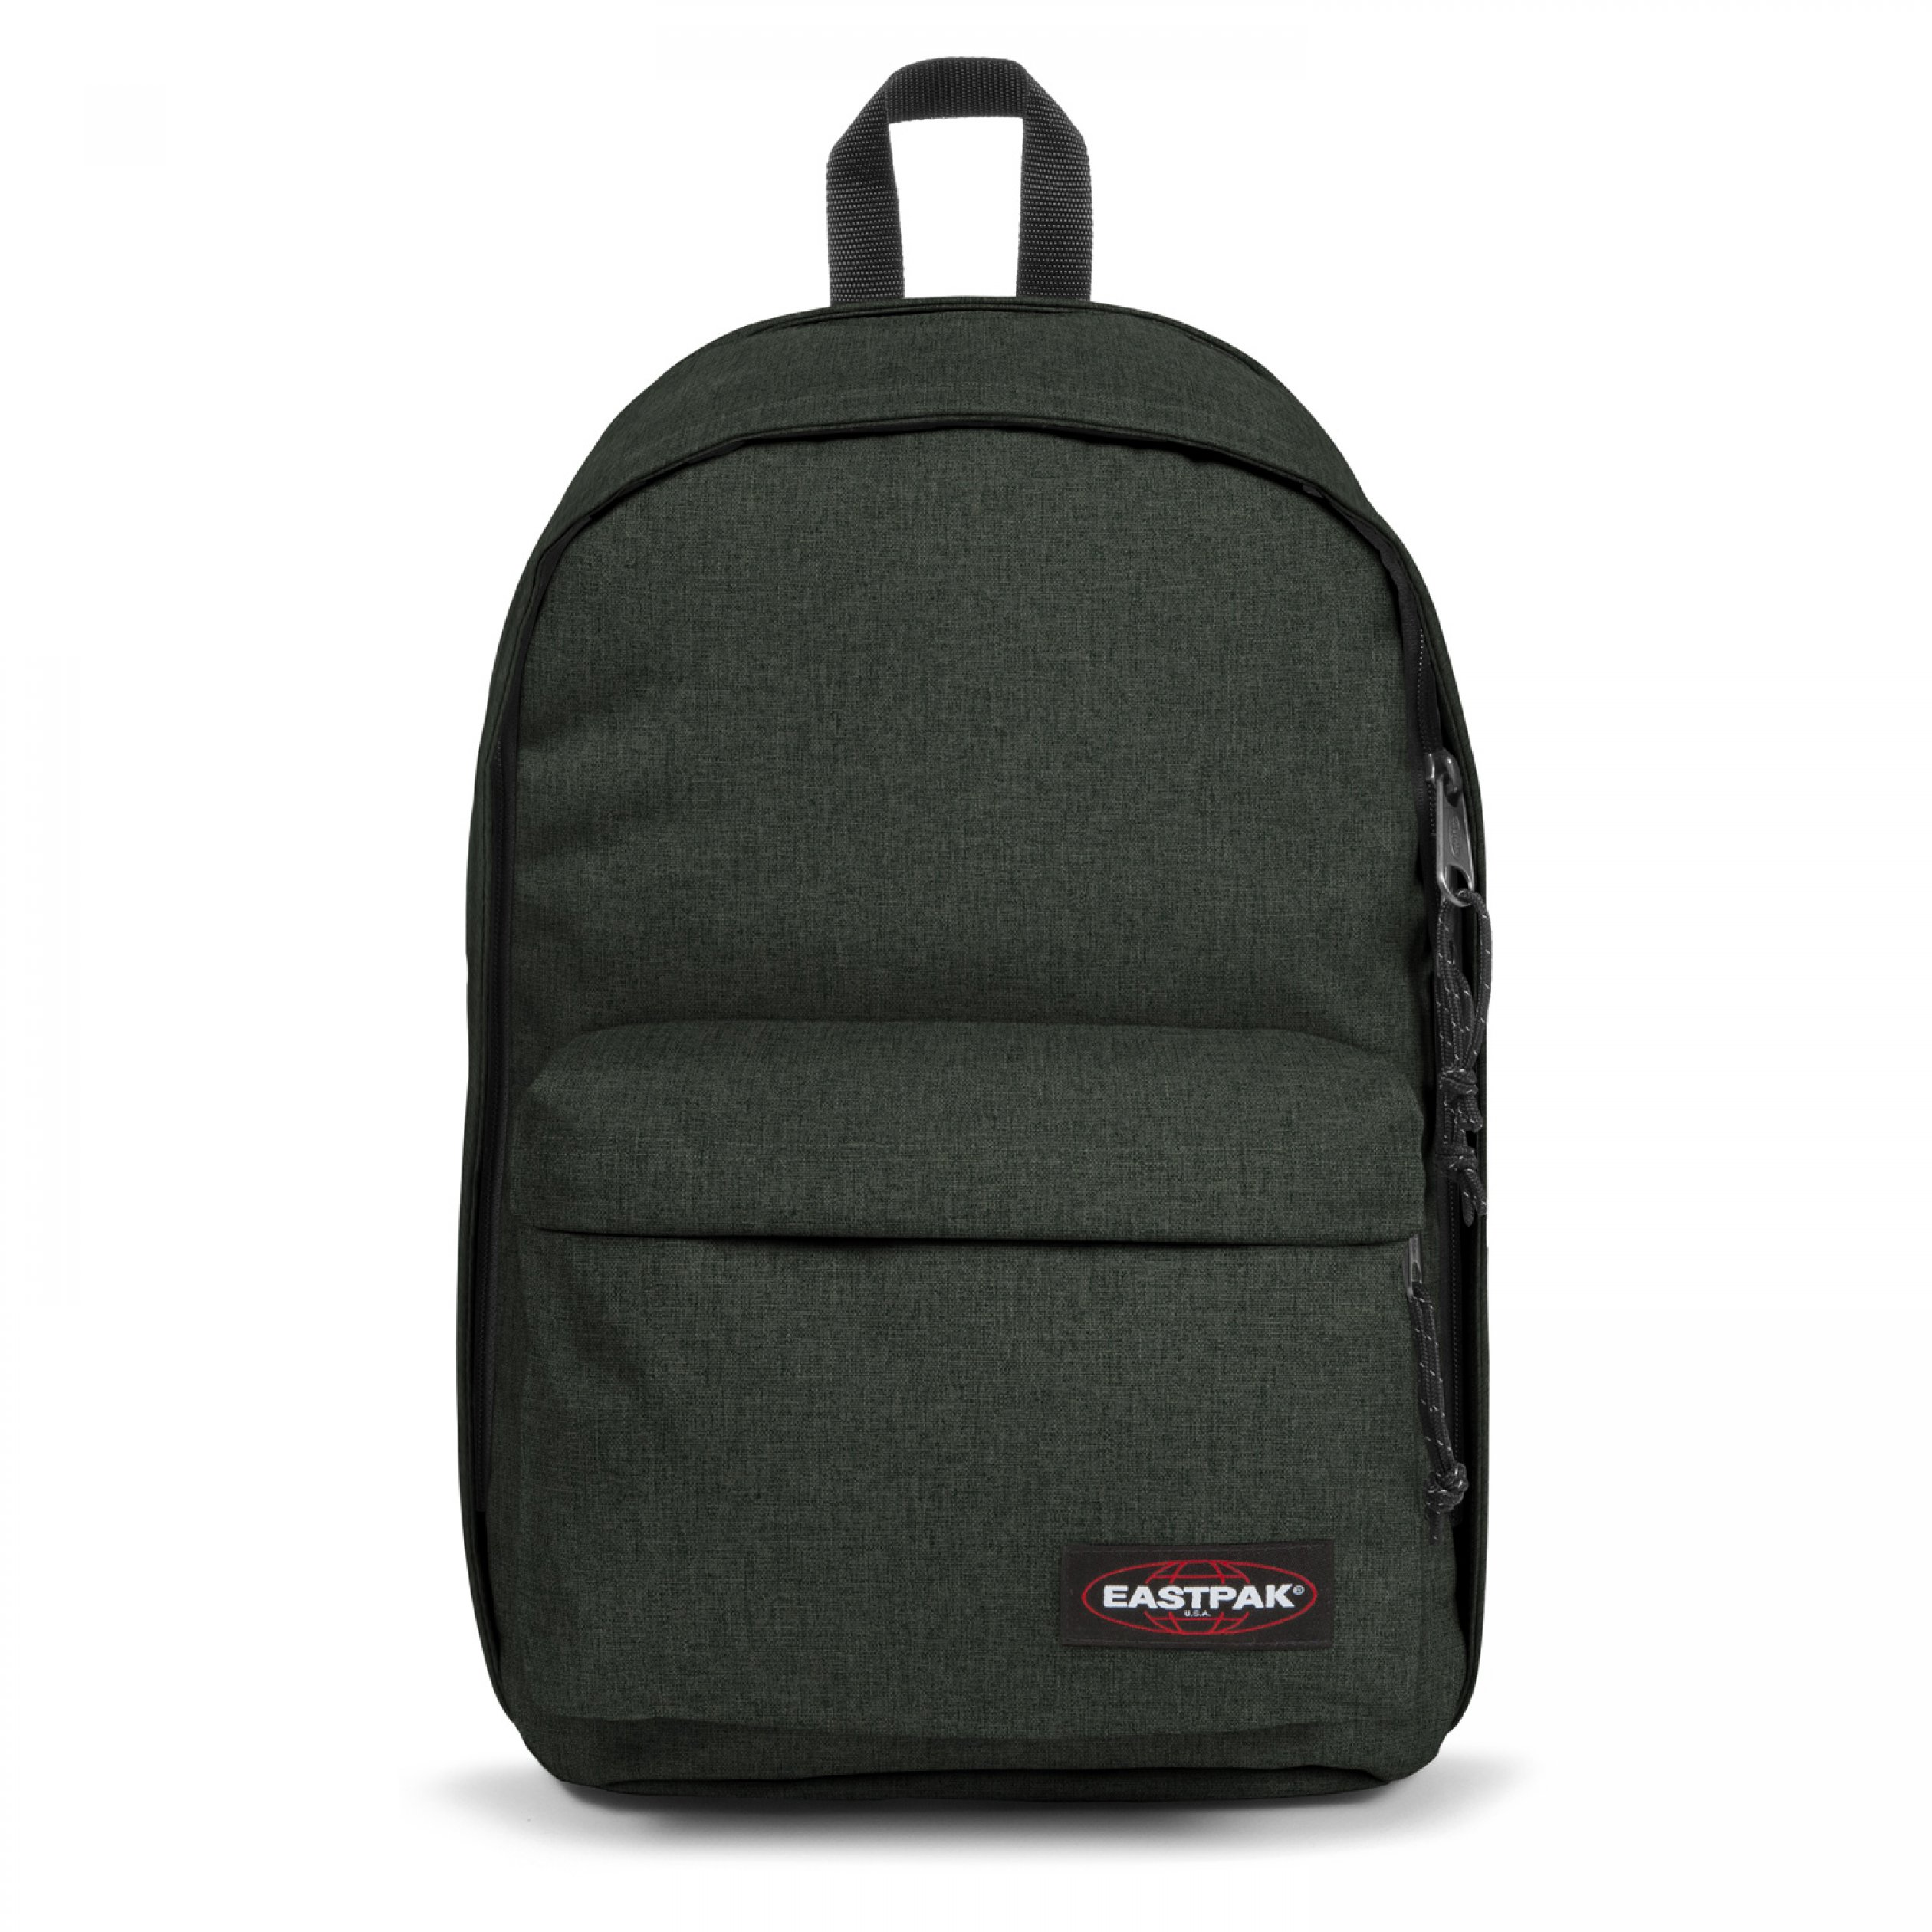 Eastpak BACK TO WORK Whale Grey Hátizsák 27L (vegán)